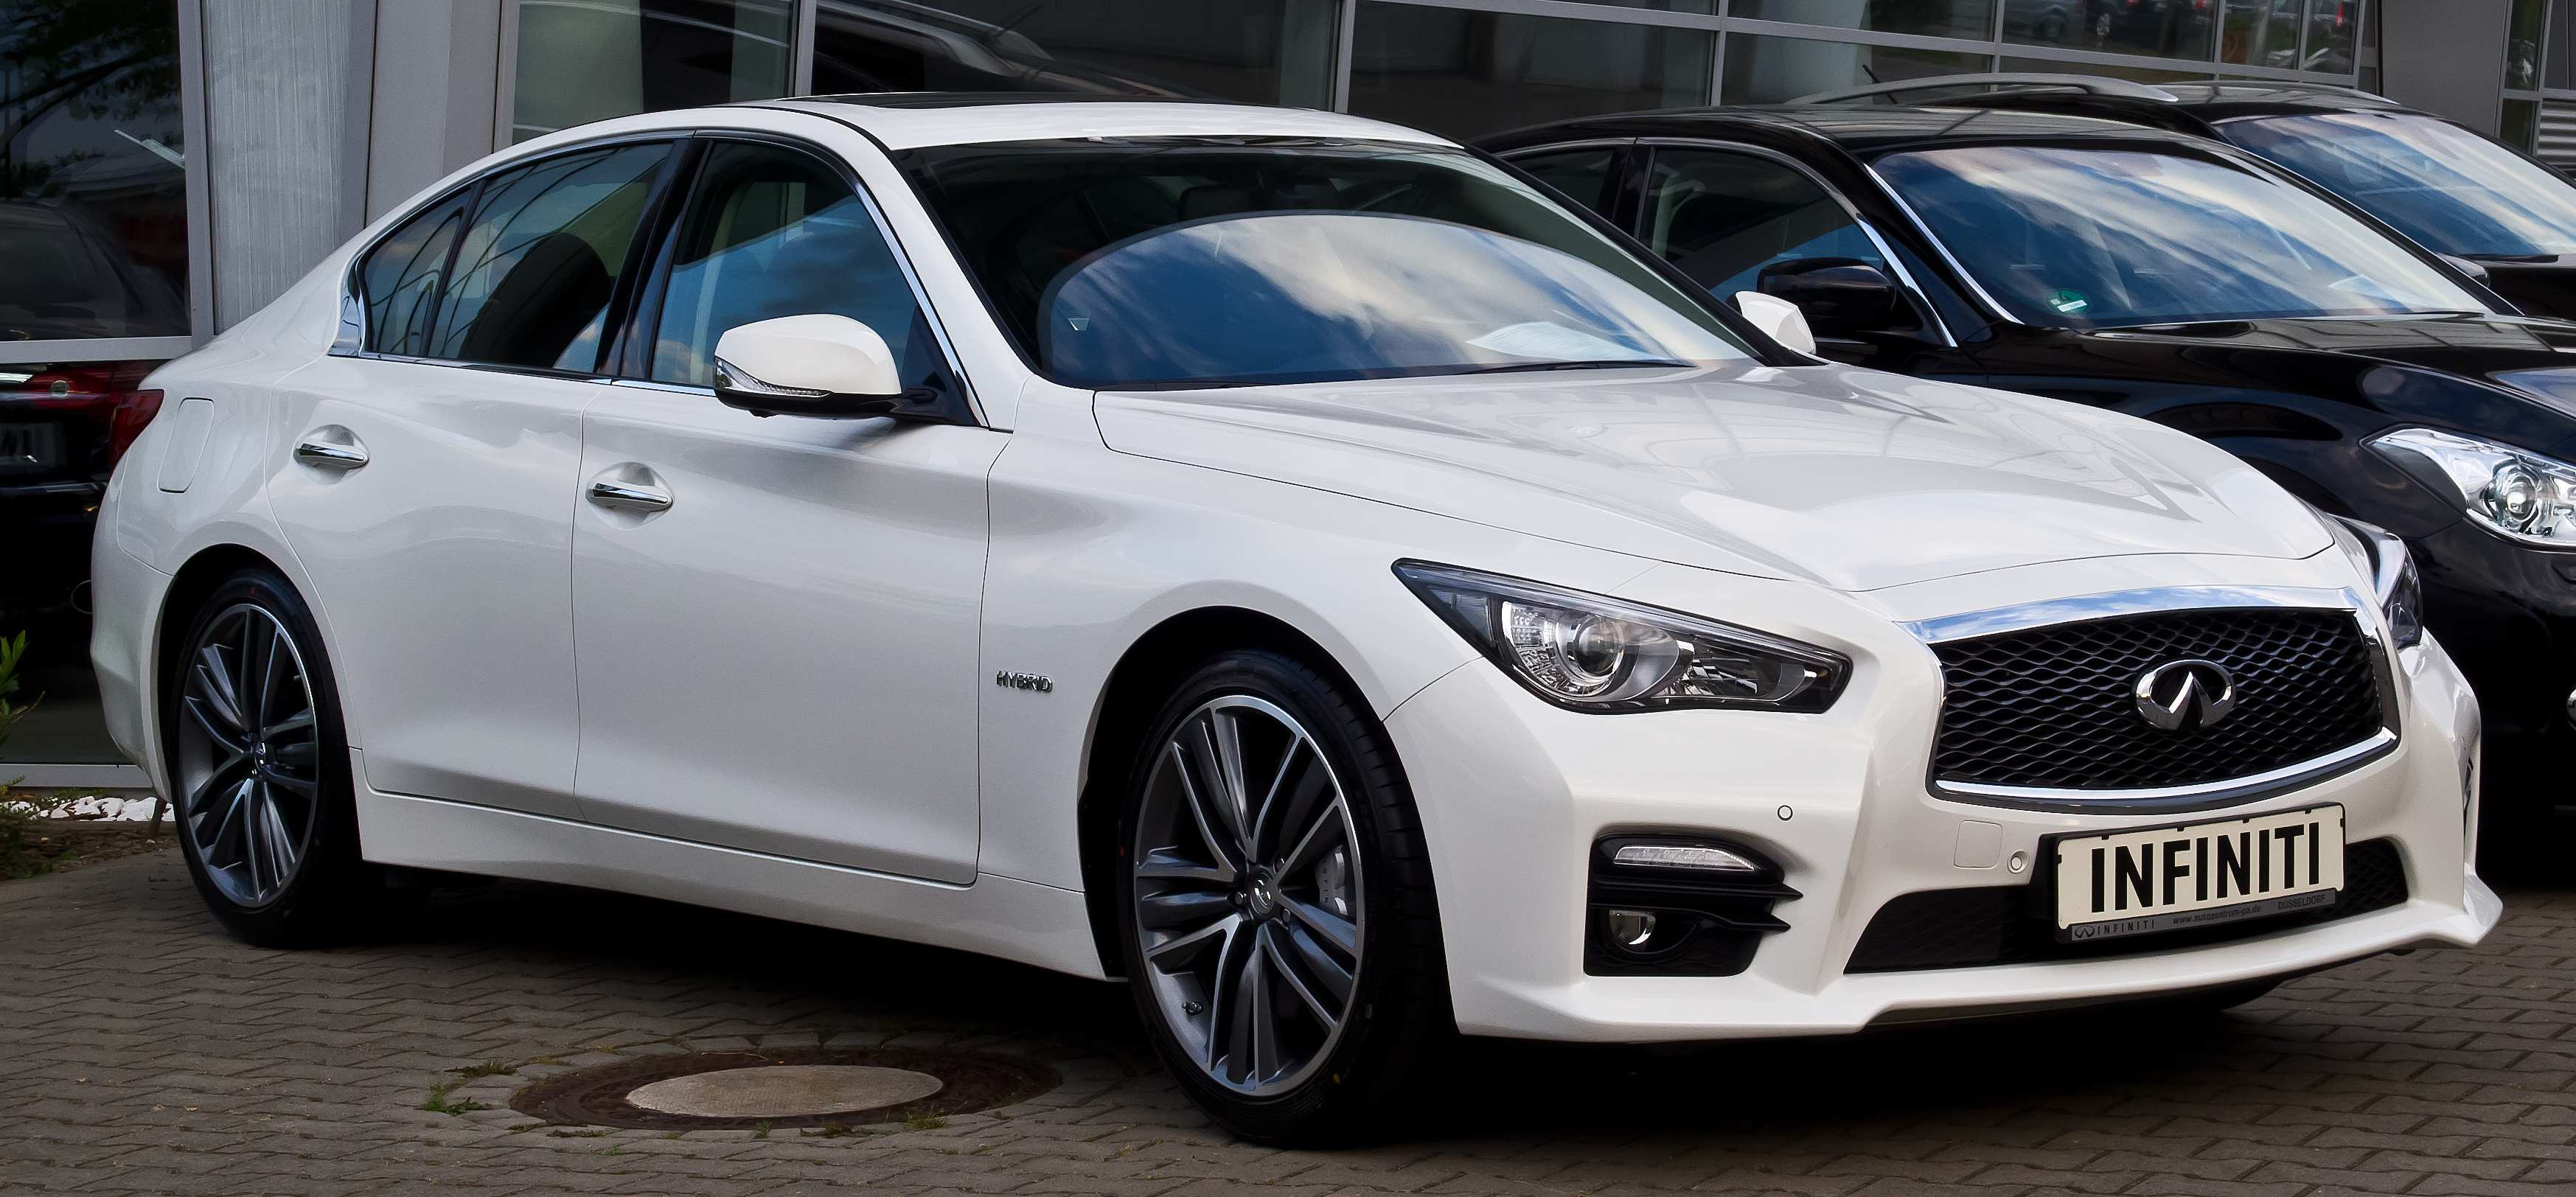 66 The 2020 Infiniti Q50 Coupe Eau Rouge Prices